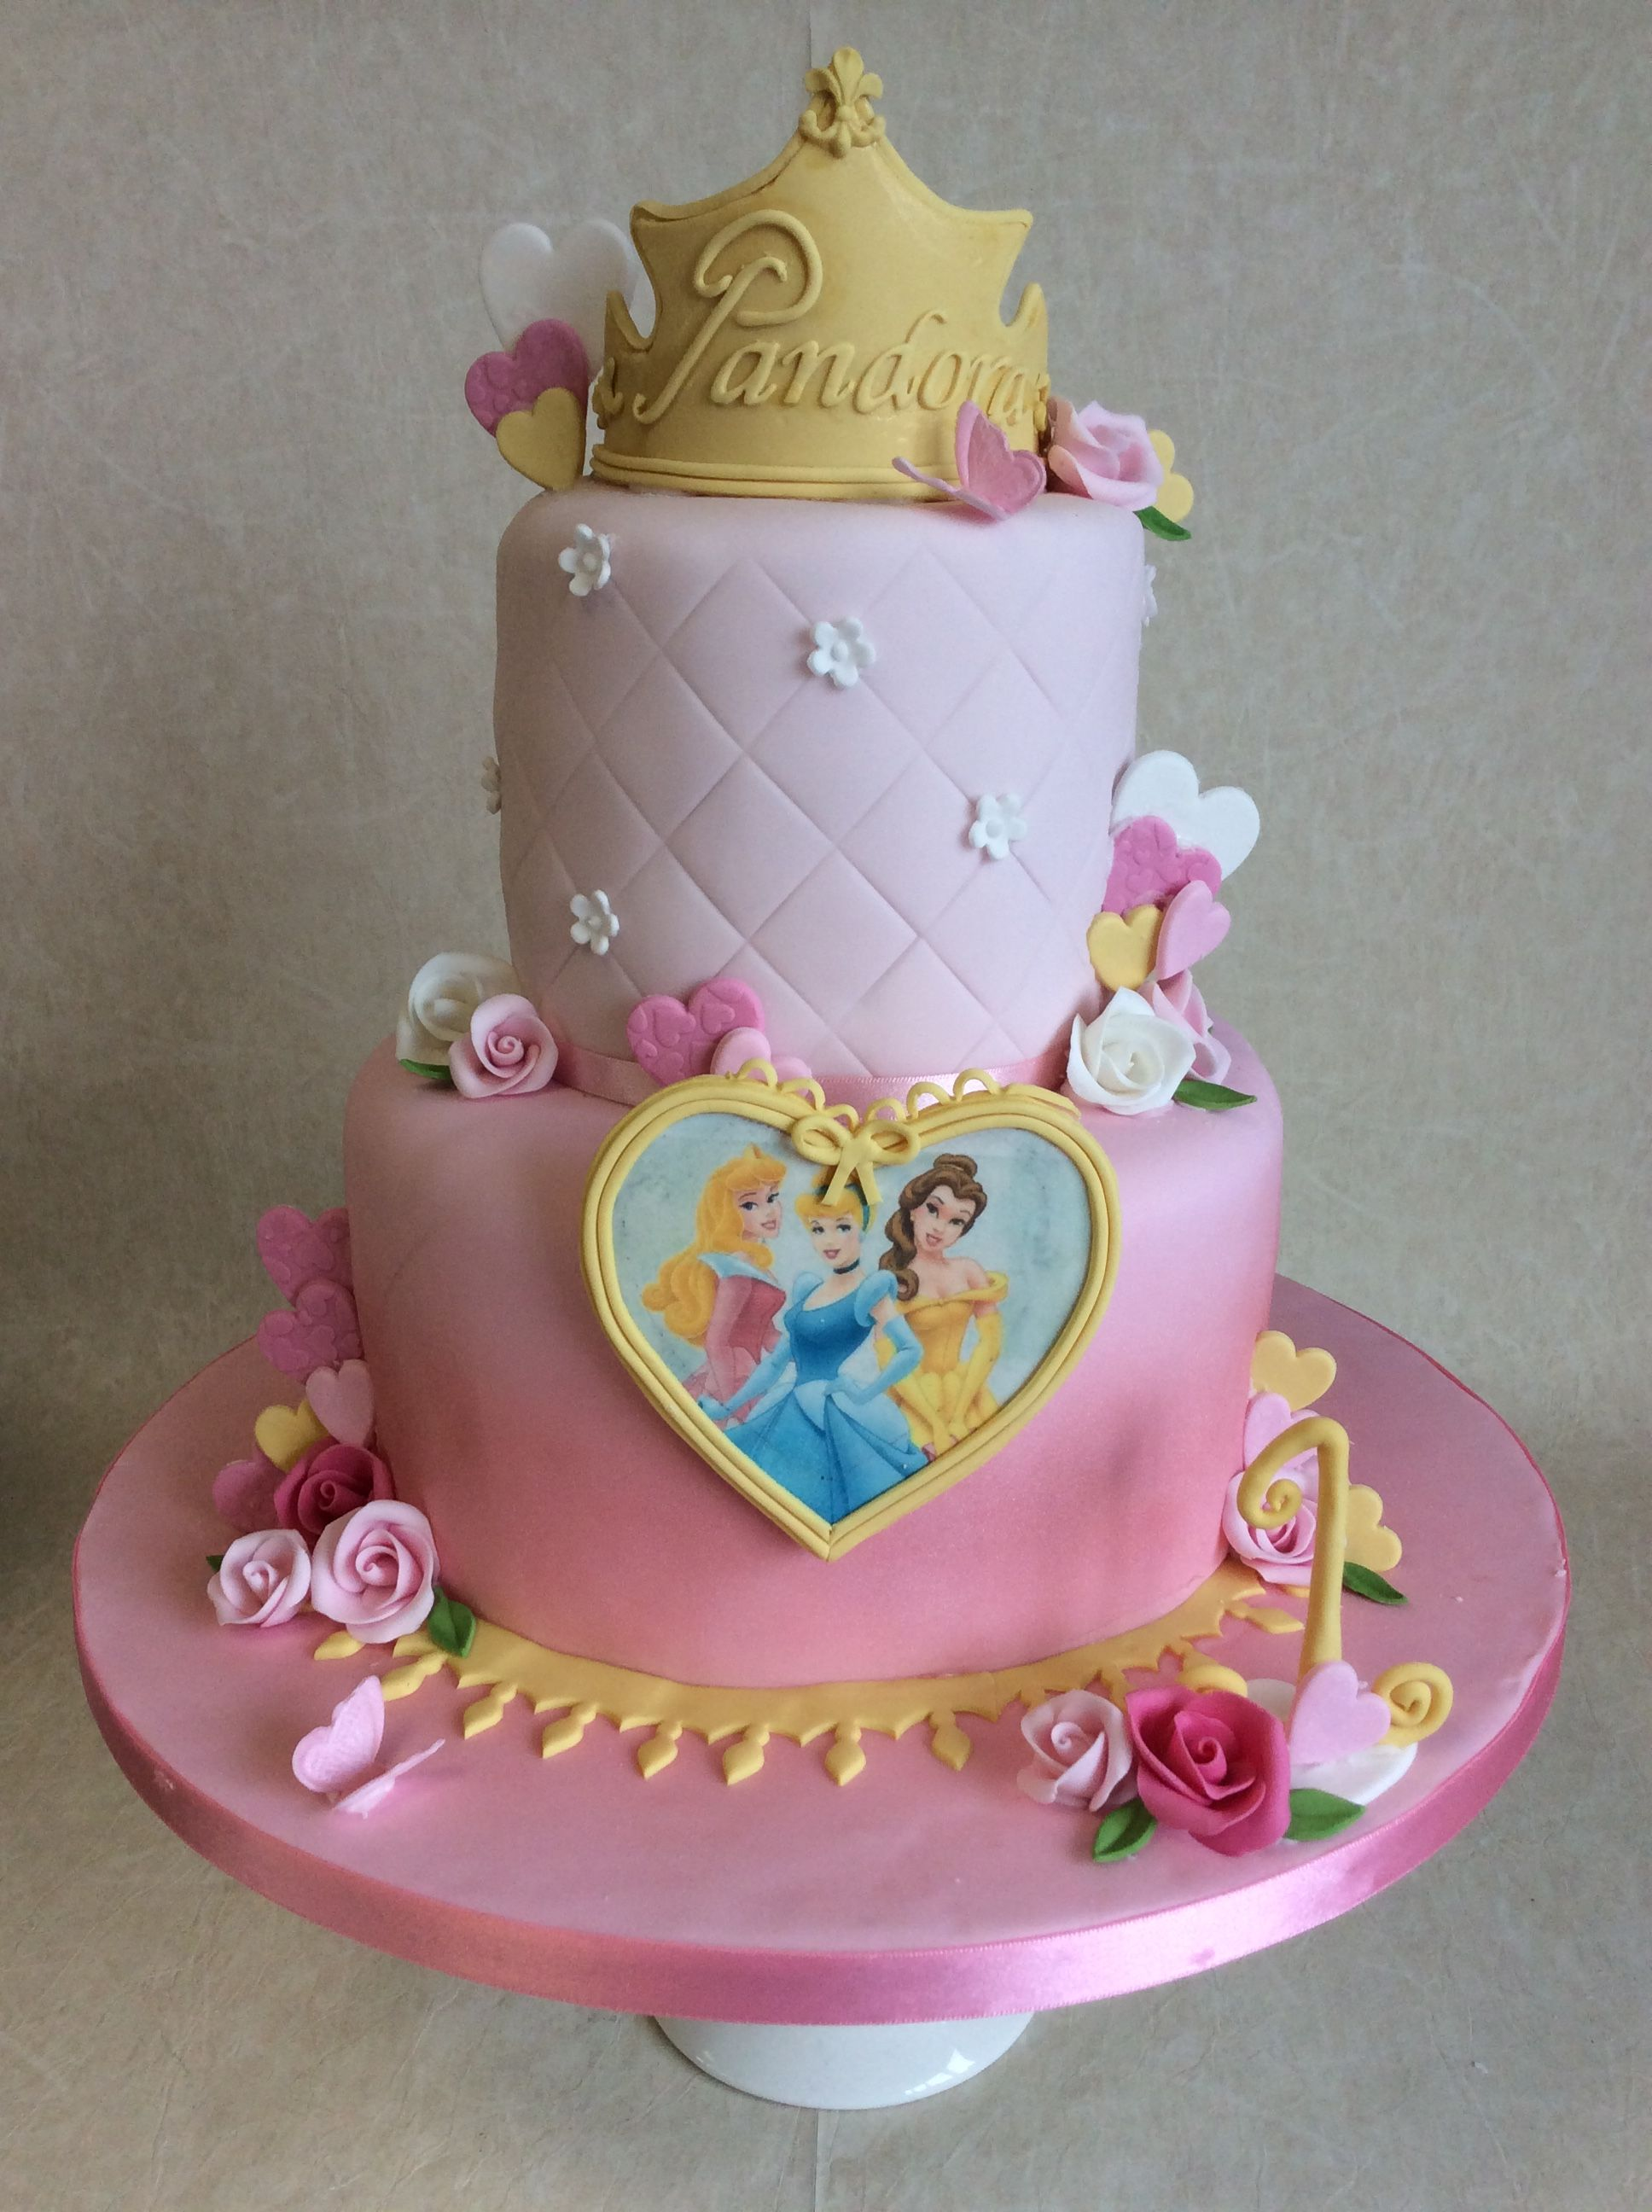 2 Tier Disney Princess Theme 1st Birthday Cake With Images